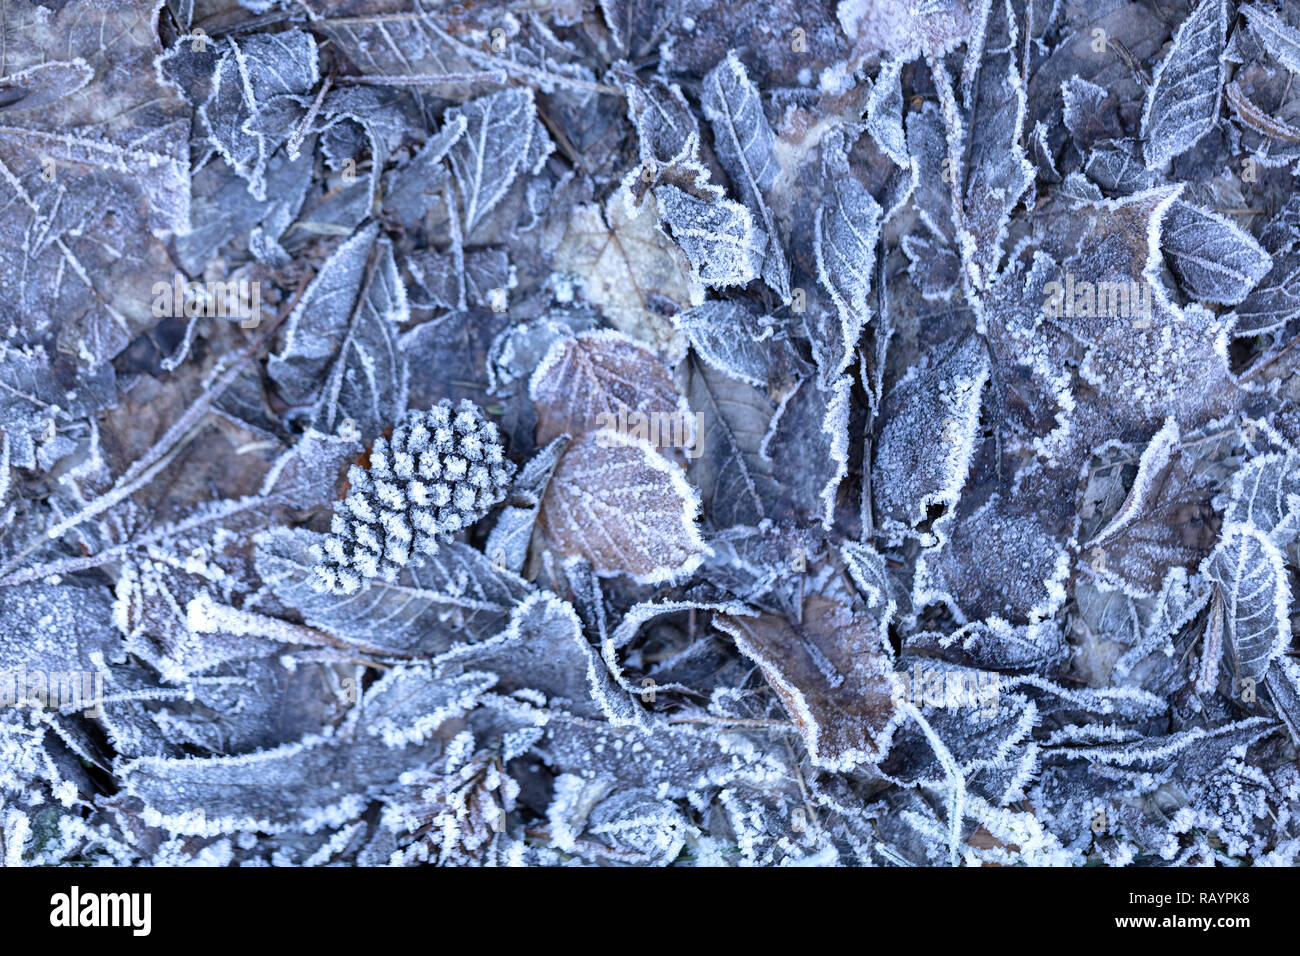 background of dried frozen leaves on the forest floor at sunrise on a winter morning, photo with blue and brown tones. - Stock Image